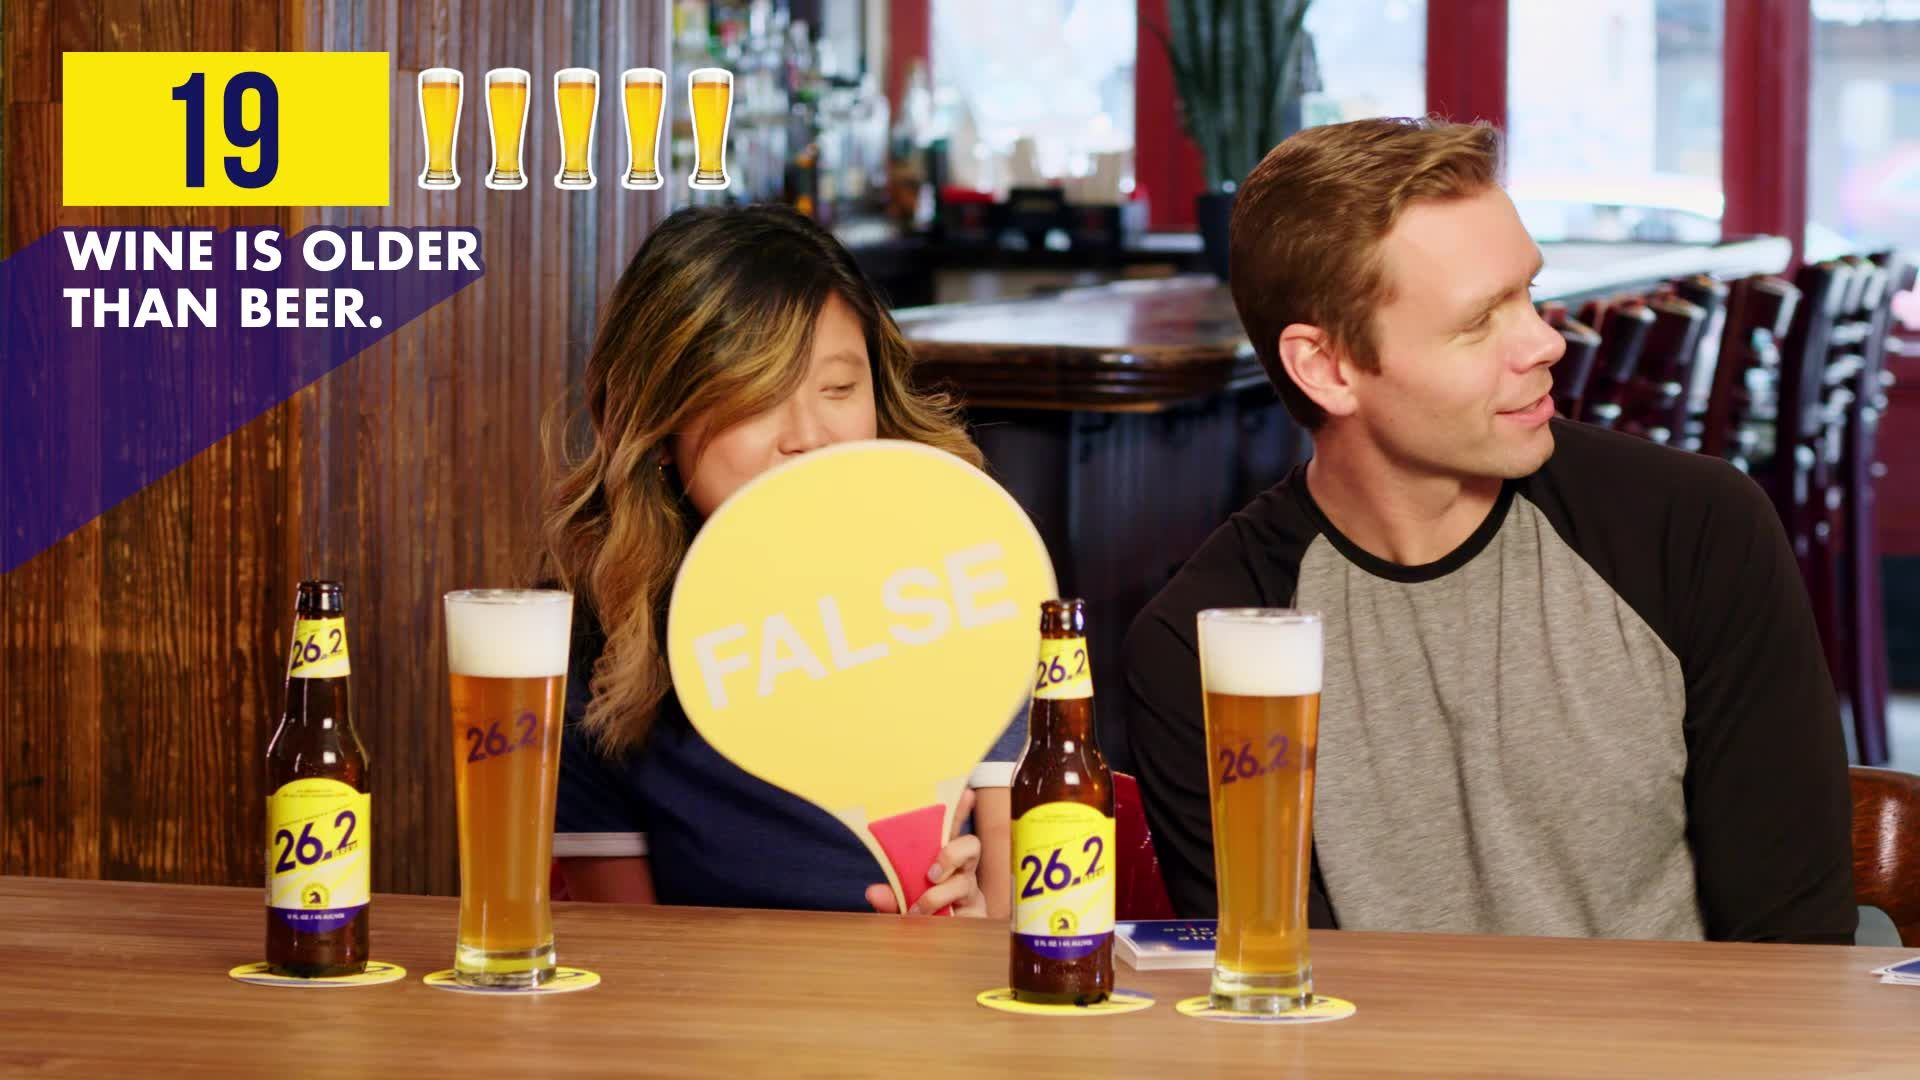 Watch Runner's World Editors Test Their Beer Knowledge Against a Master Brewer